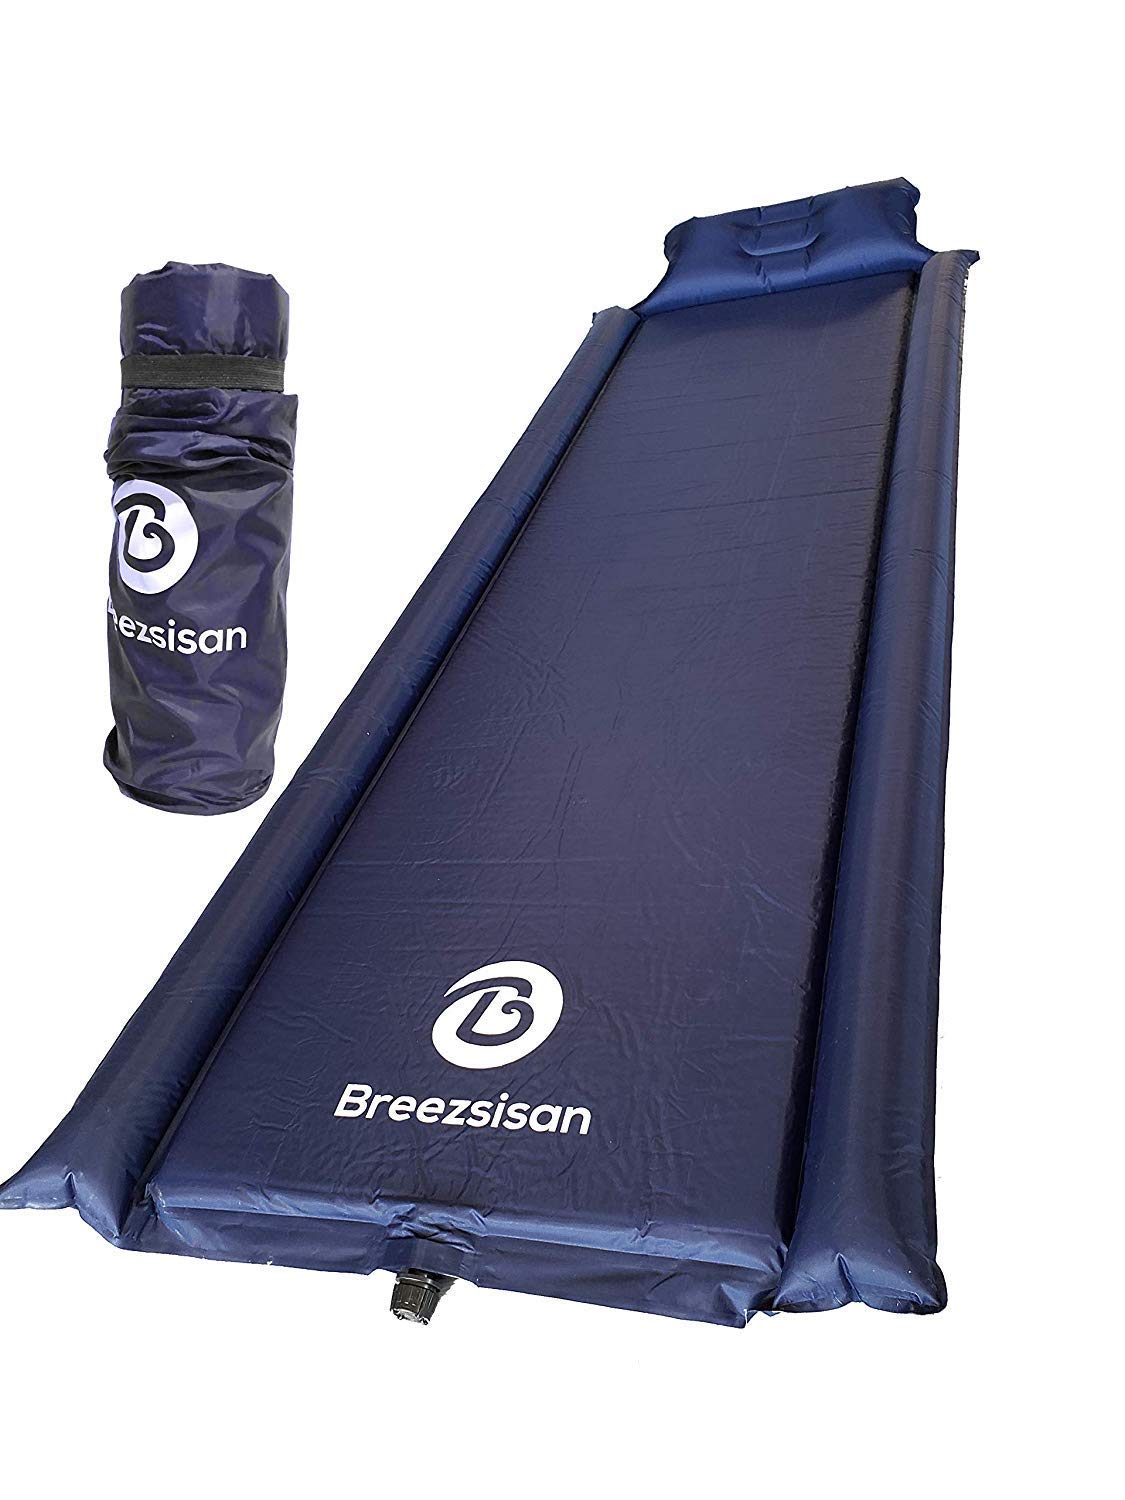 Breezsisan Sleeping Pads with Pillow, Armrest for: Camping Hiking Backpacking Floor. Self Inflating Outdoor Foam Sleeping Pad-Best Ideal -Comfortable-Camping pad-Inflatable Air Mattress [並行輸入品] B07R3J75WF